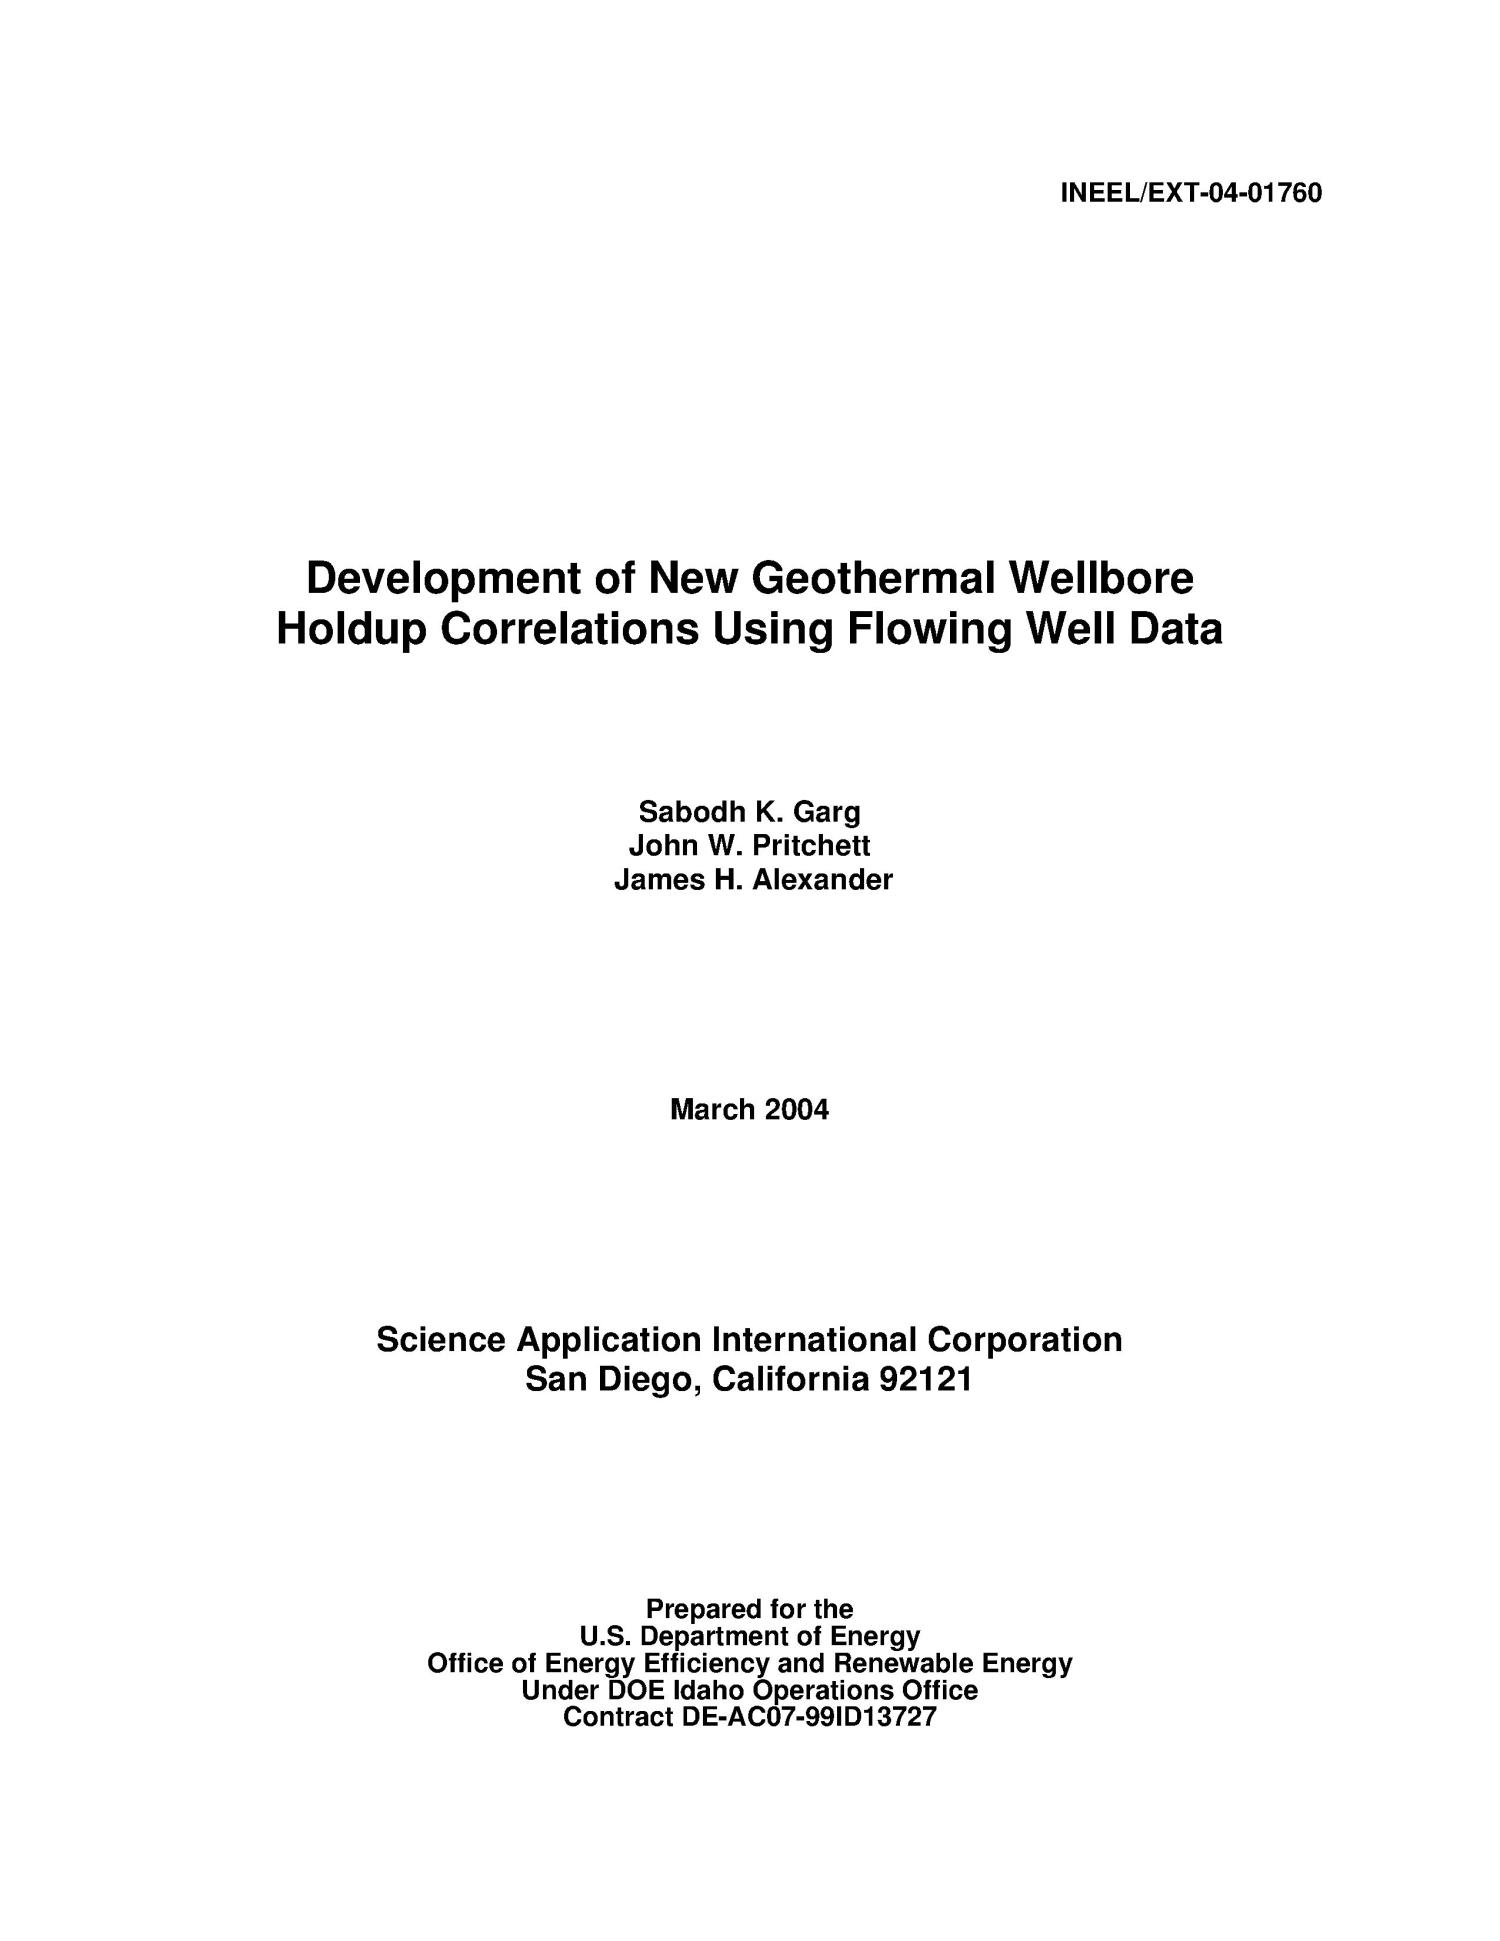 Development of New Geothermal Wellbore Holdup Correlations Using Flowing Well Data                                                                                                      [Sequence #]: 3 of 166